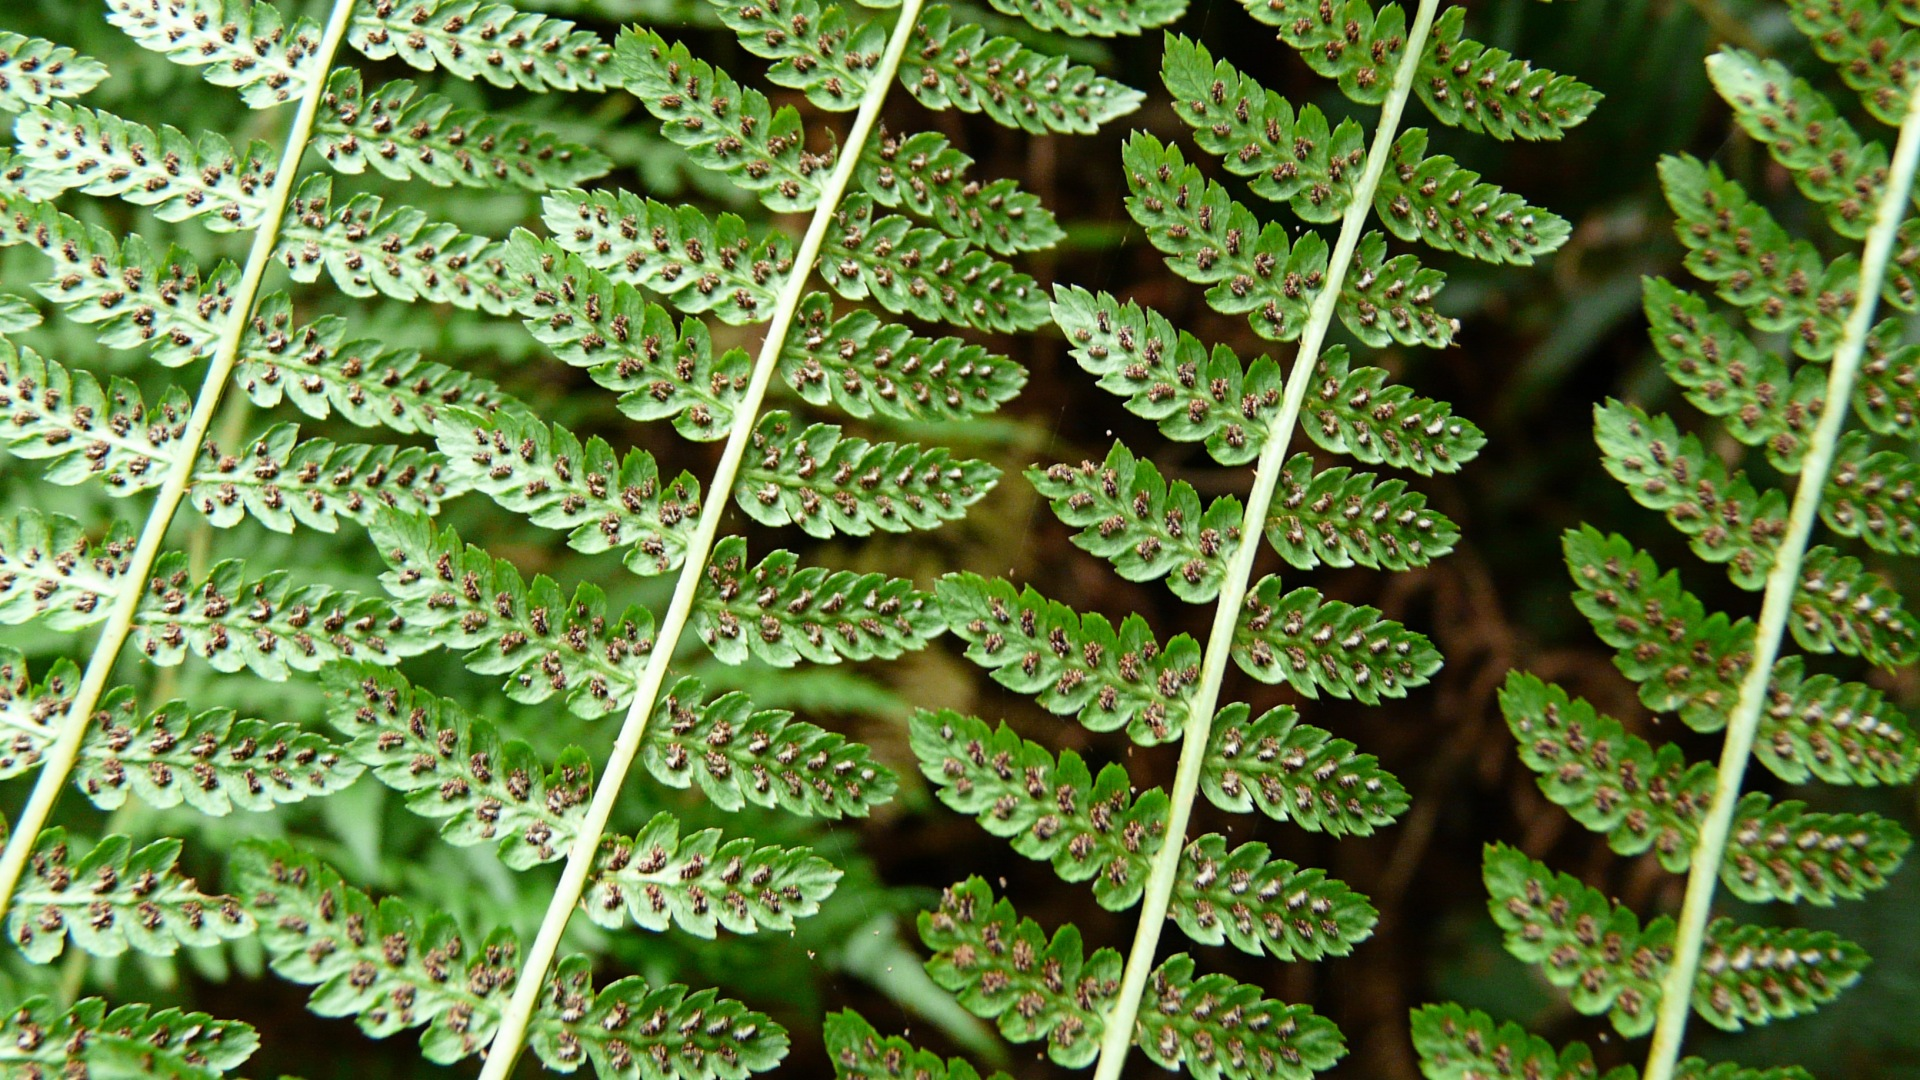 Photograph of green ferns